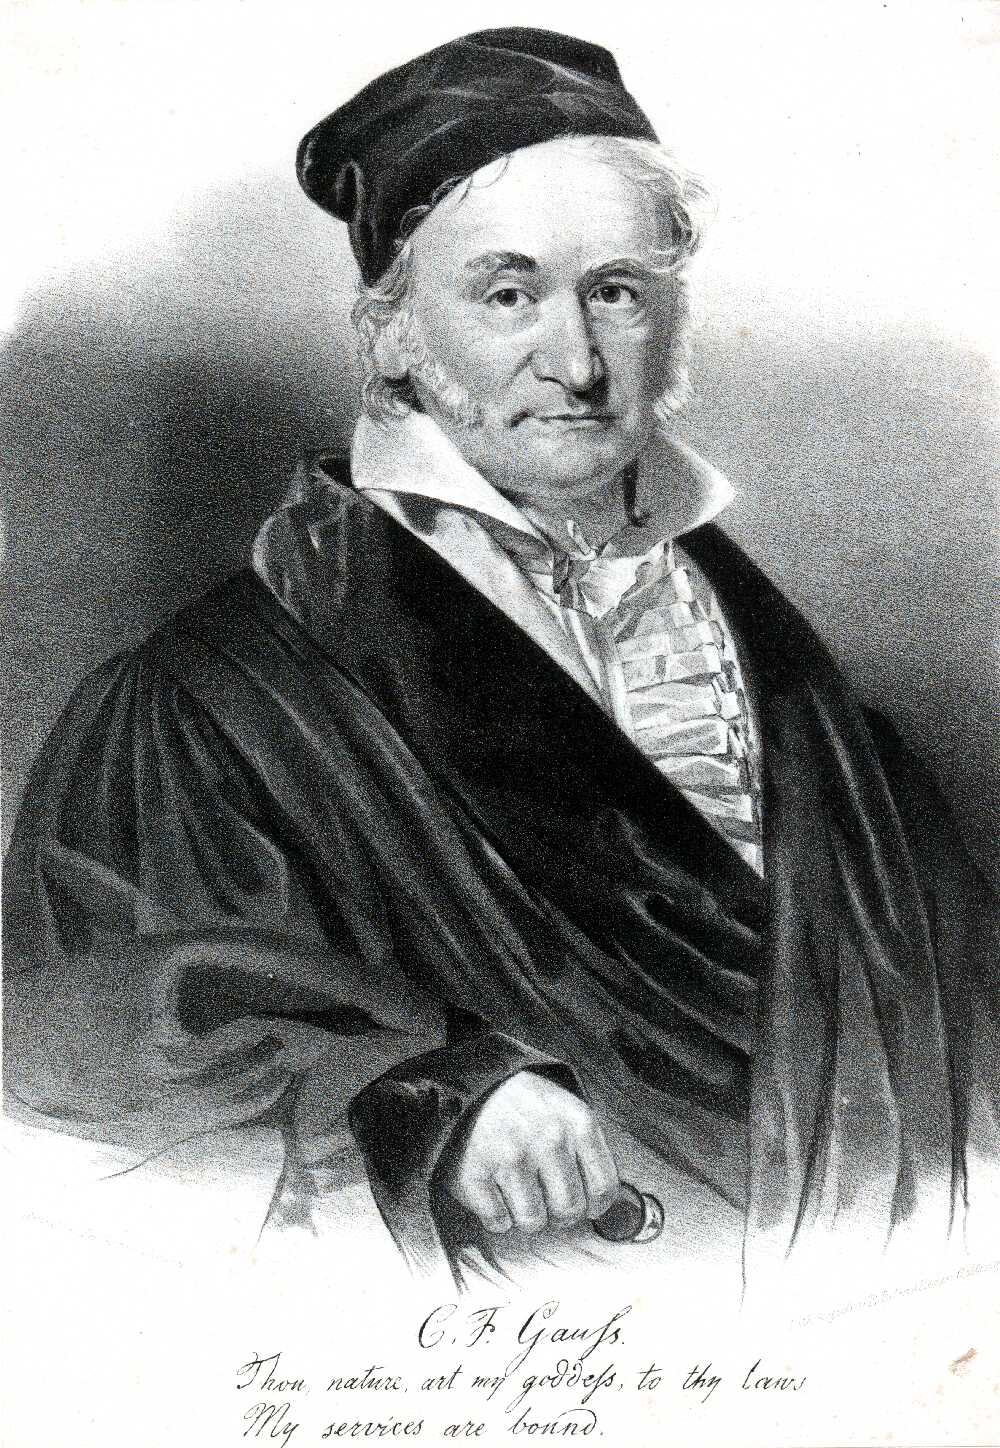 an introduction to the life of johann carl friedrich gauss Johann carl friedrich gauss (gauß) (april 30, 1777 - february 23, 1855) was a legendary german mathematician, astronomer and physicist with a very wide range of.